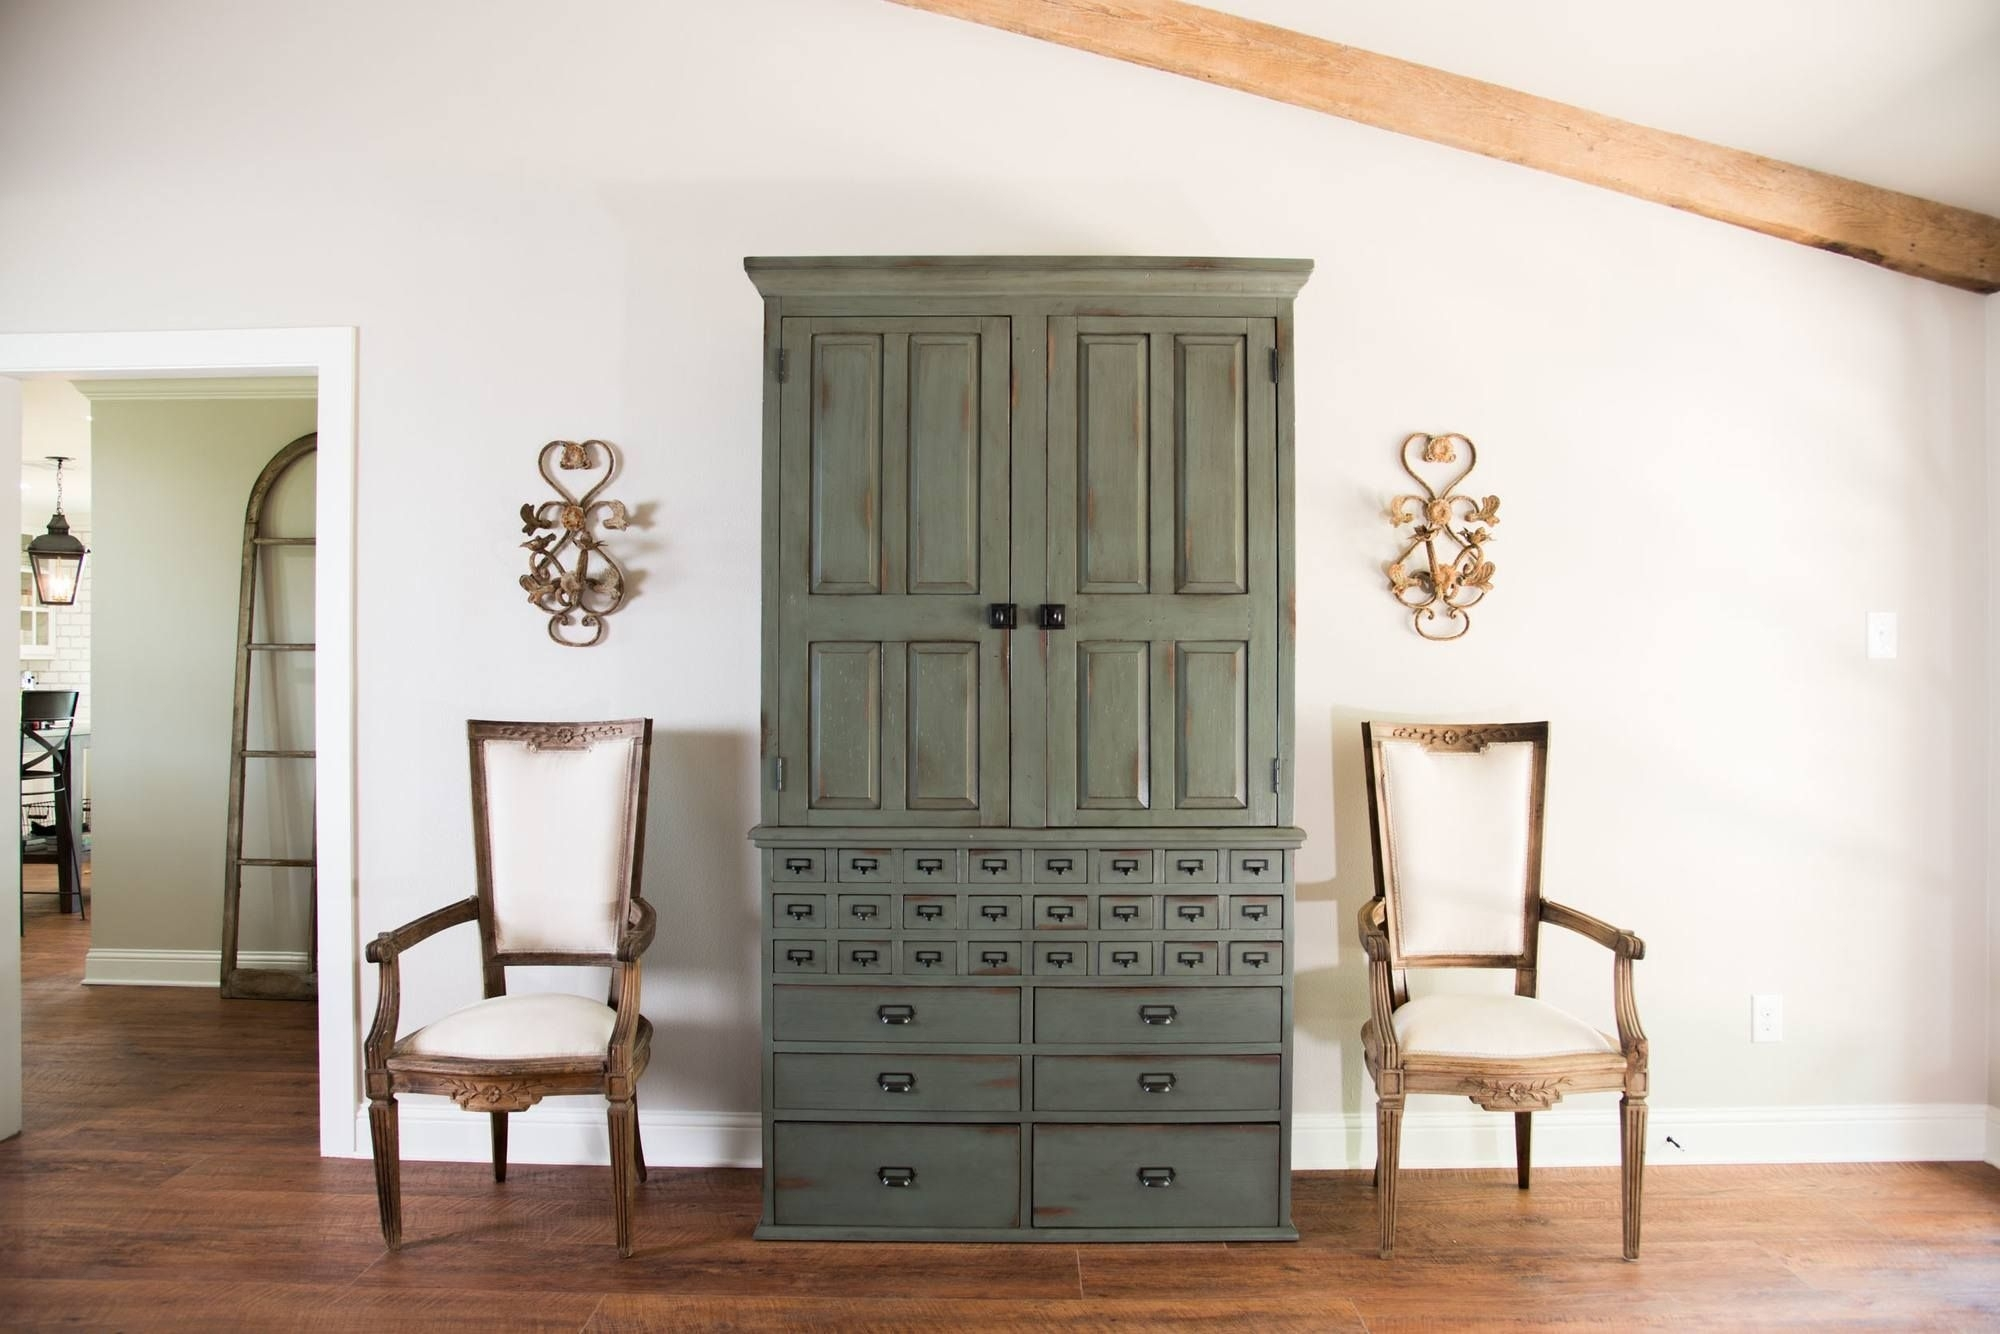 Adorable Ashley Furniture Magnolia Home Or Magnolia Homejoanna With Magnolia Home Homestead 3 Piece Sectionals By Joanna Gaines (Image 5 of 25)